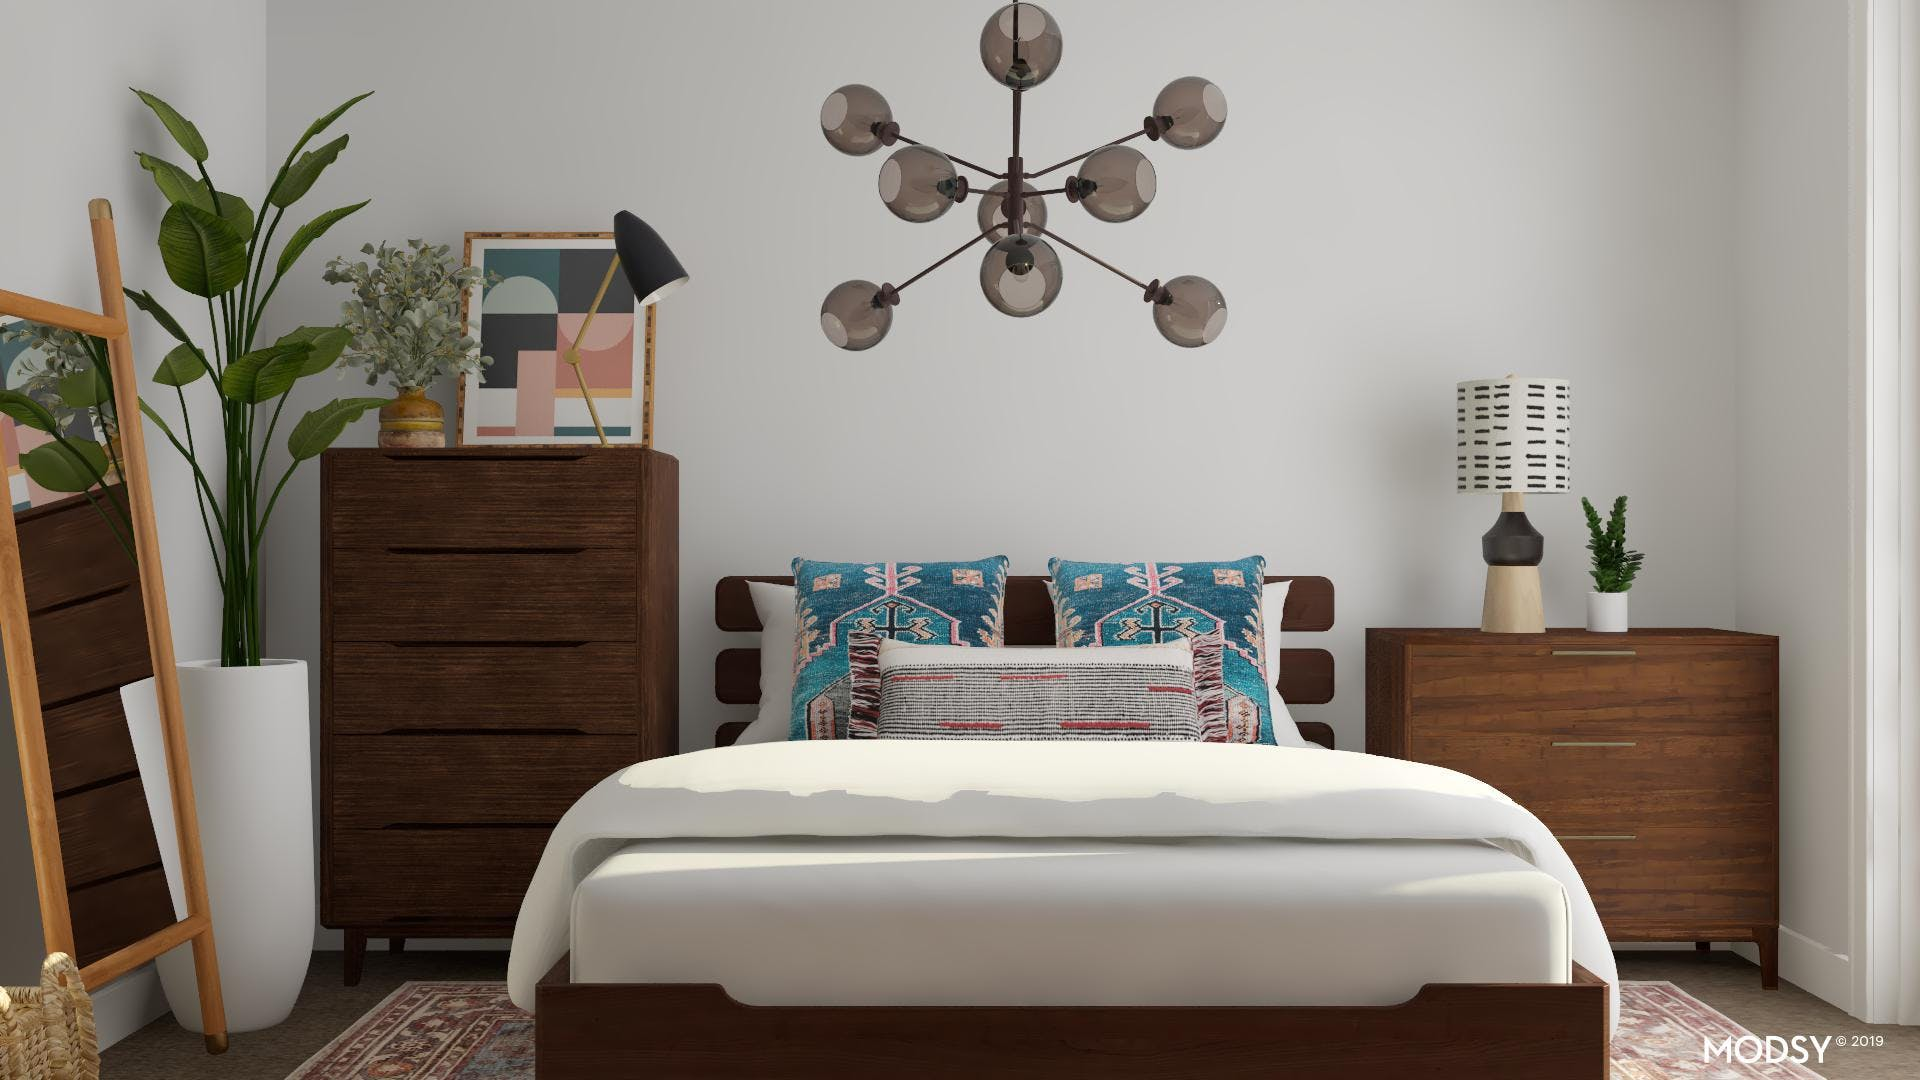 Fun With Furniture: Eclectic Styling